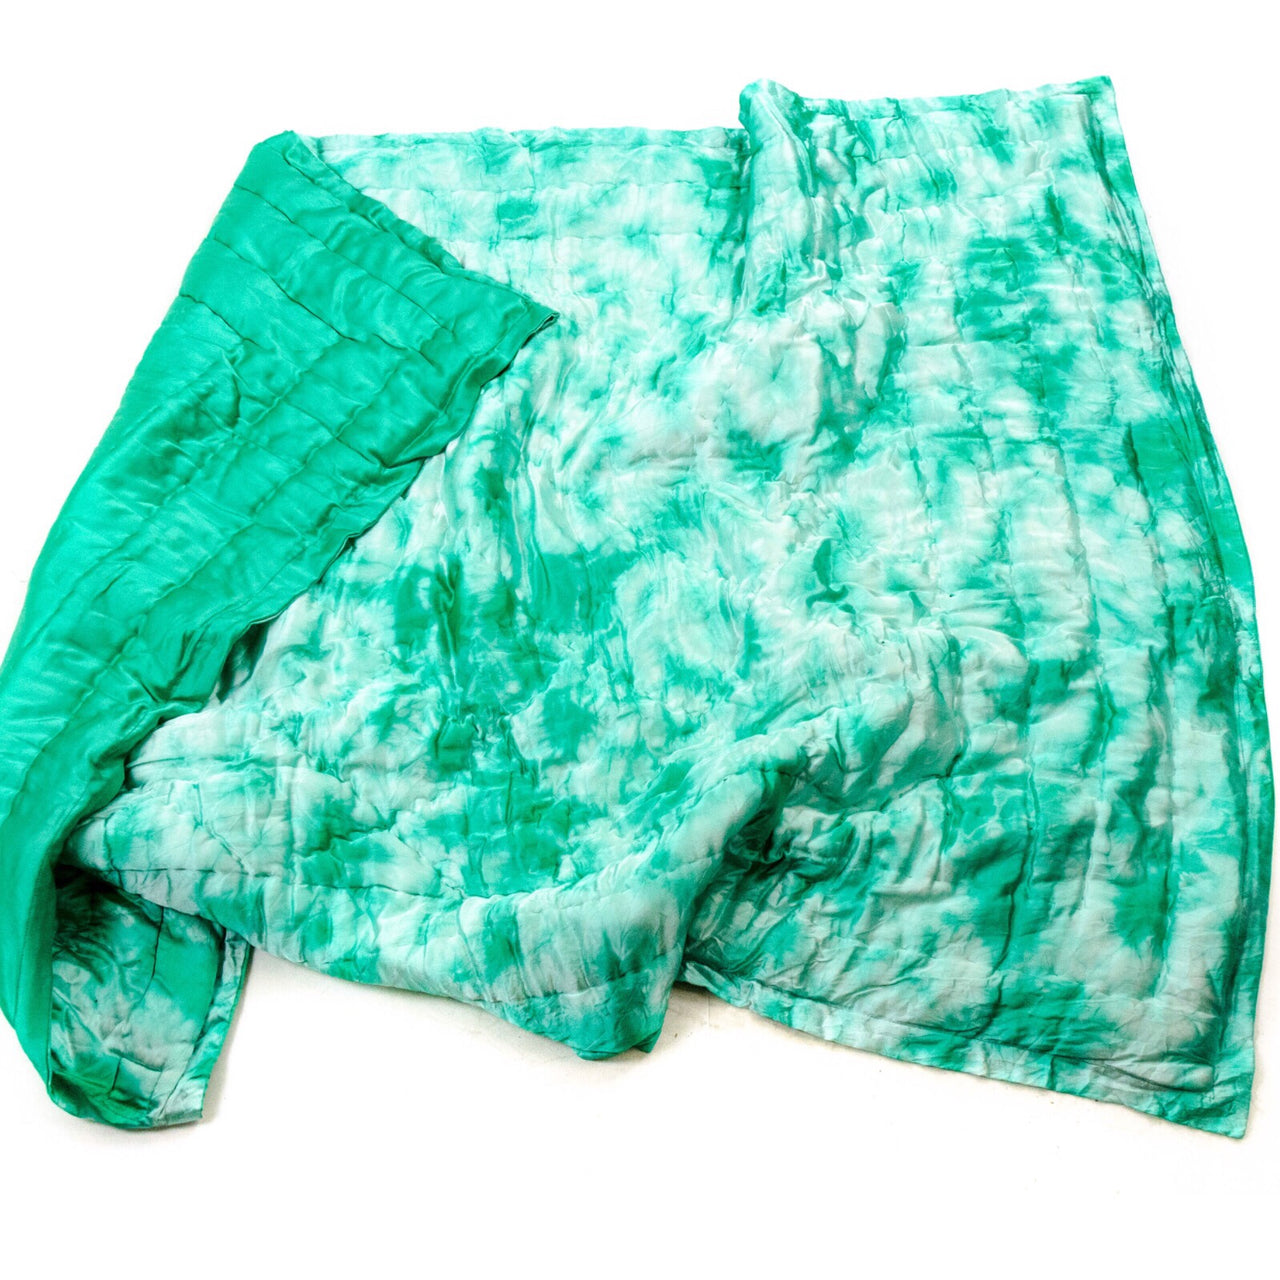 Jaipur Atelier Emerald Baby Quilt Throw